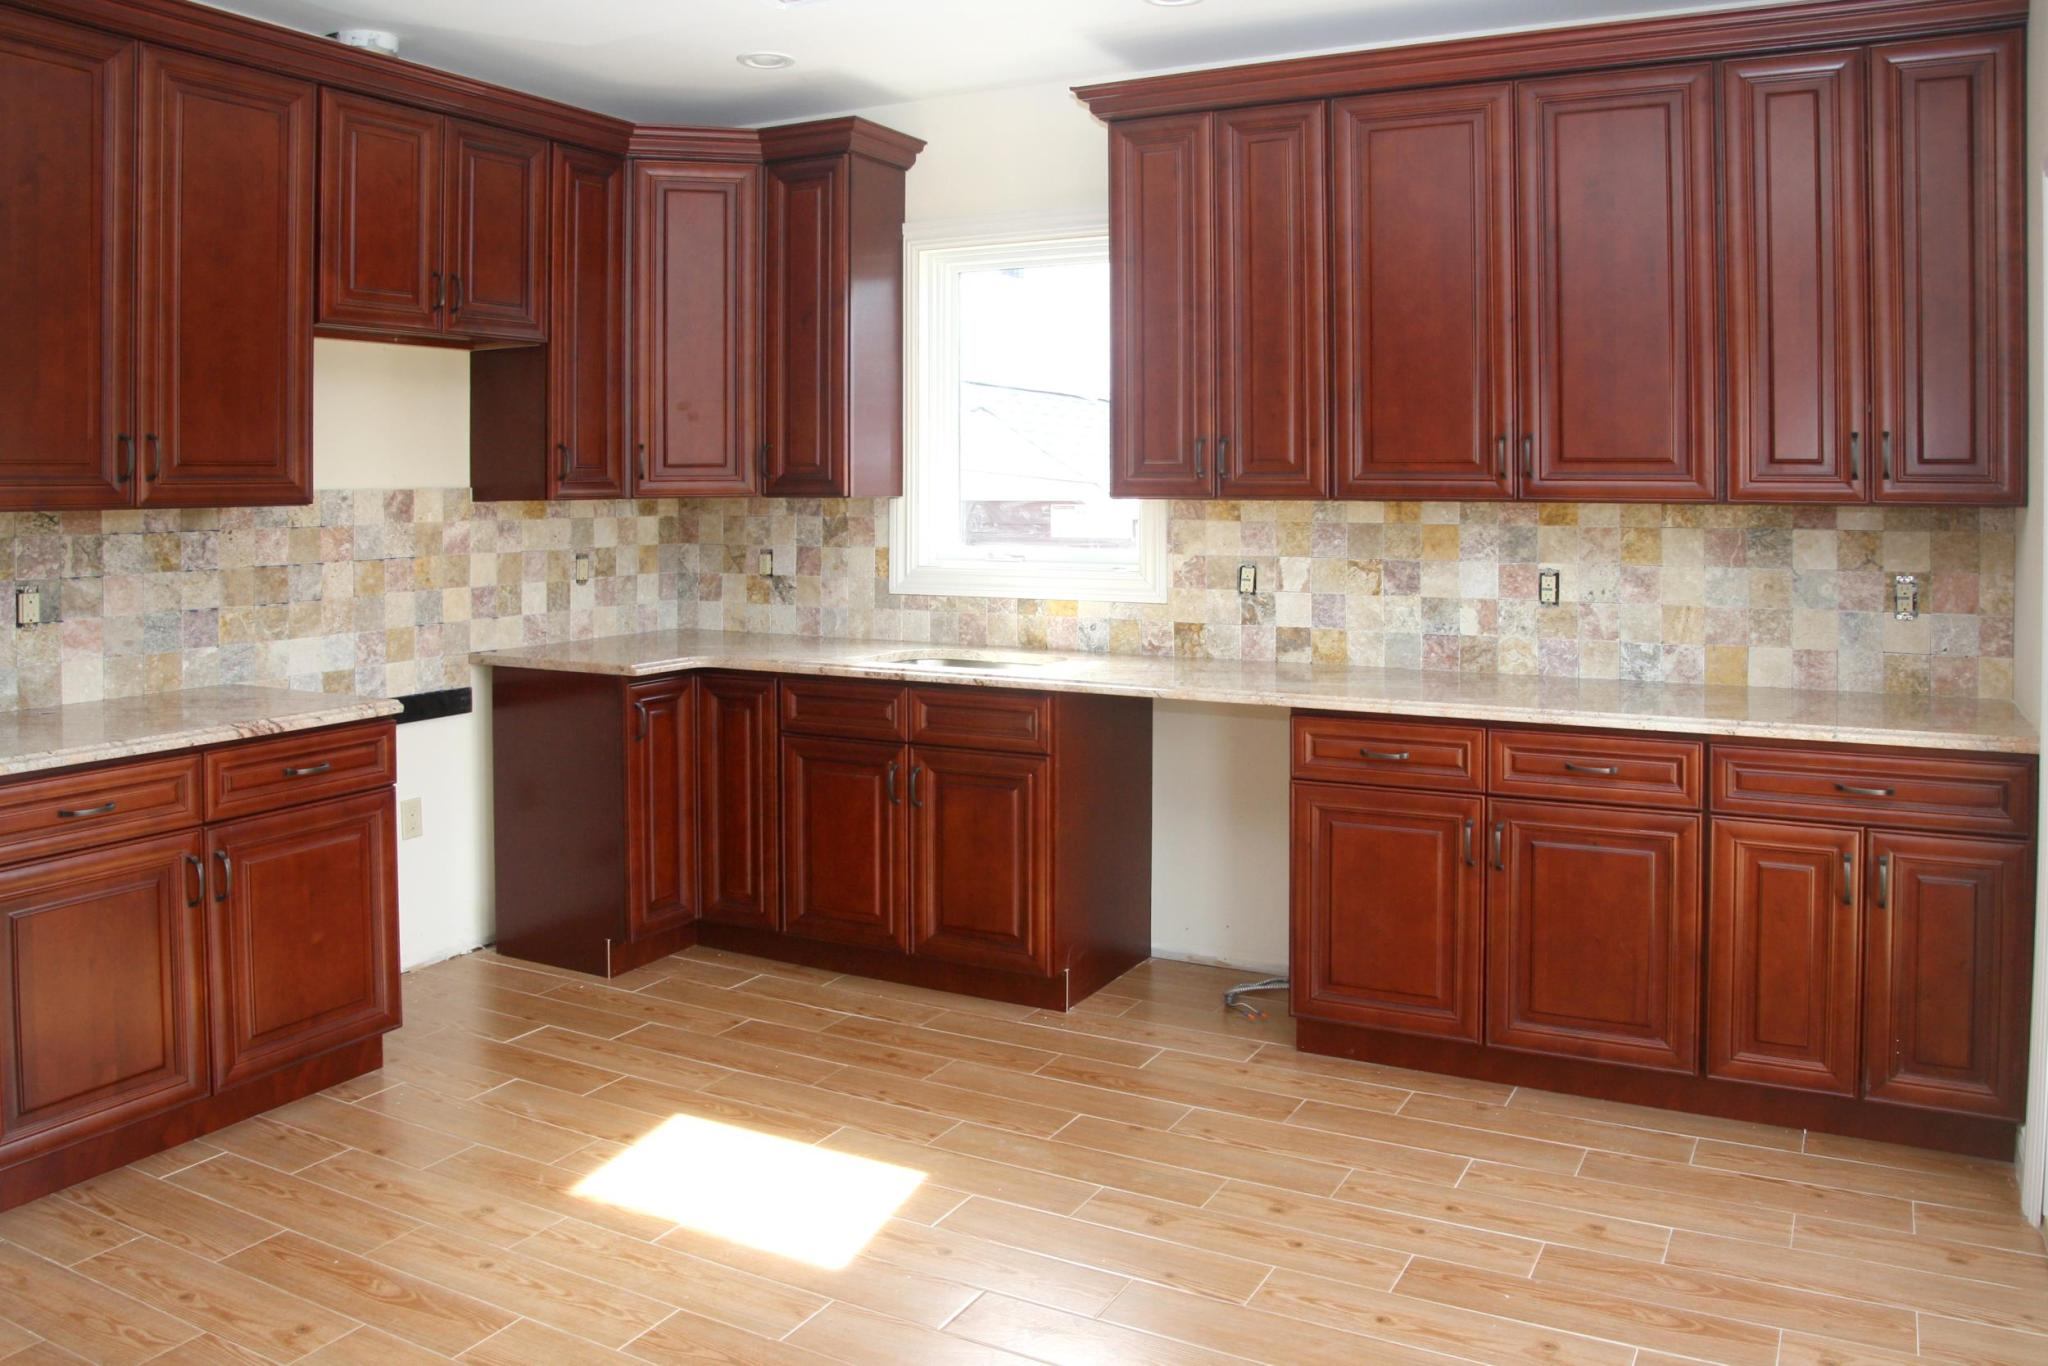 Kitchen cabinets 65th street brooklyn - 1630 E 51st St